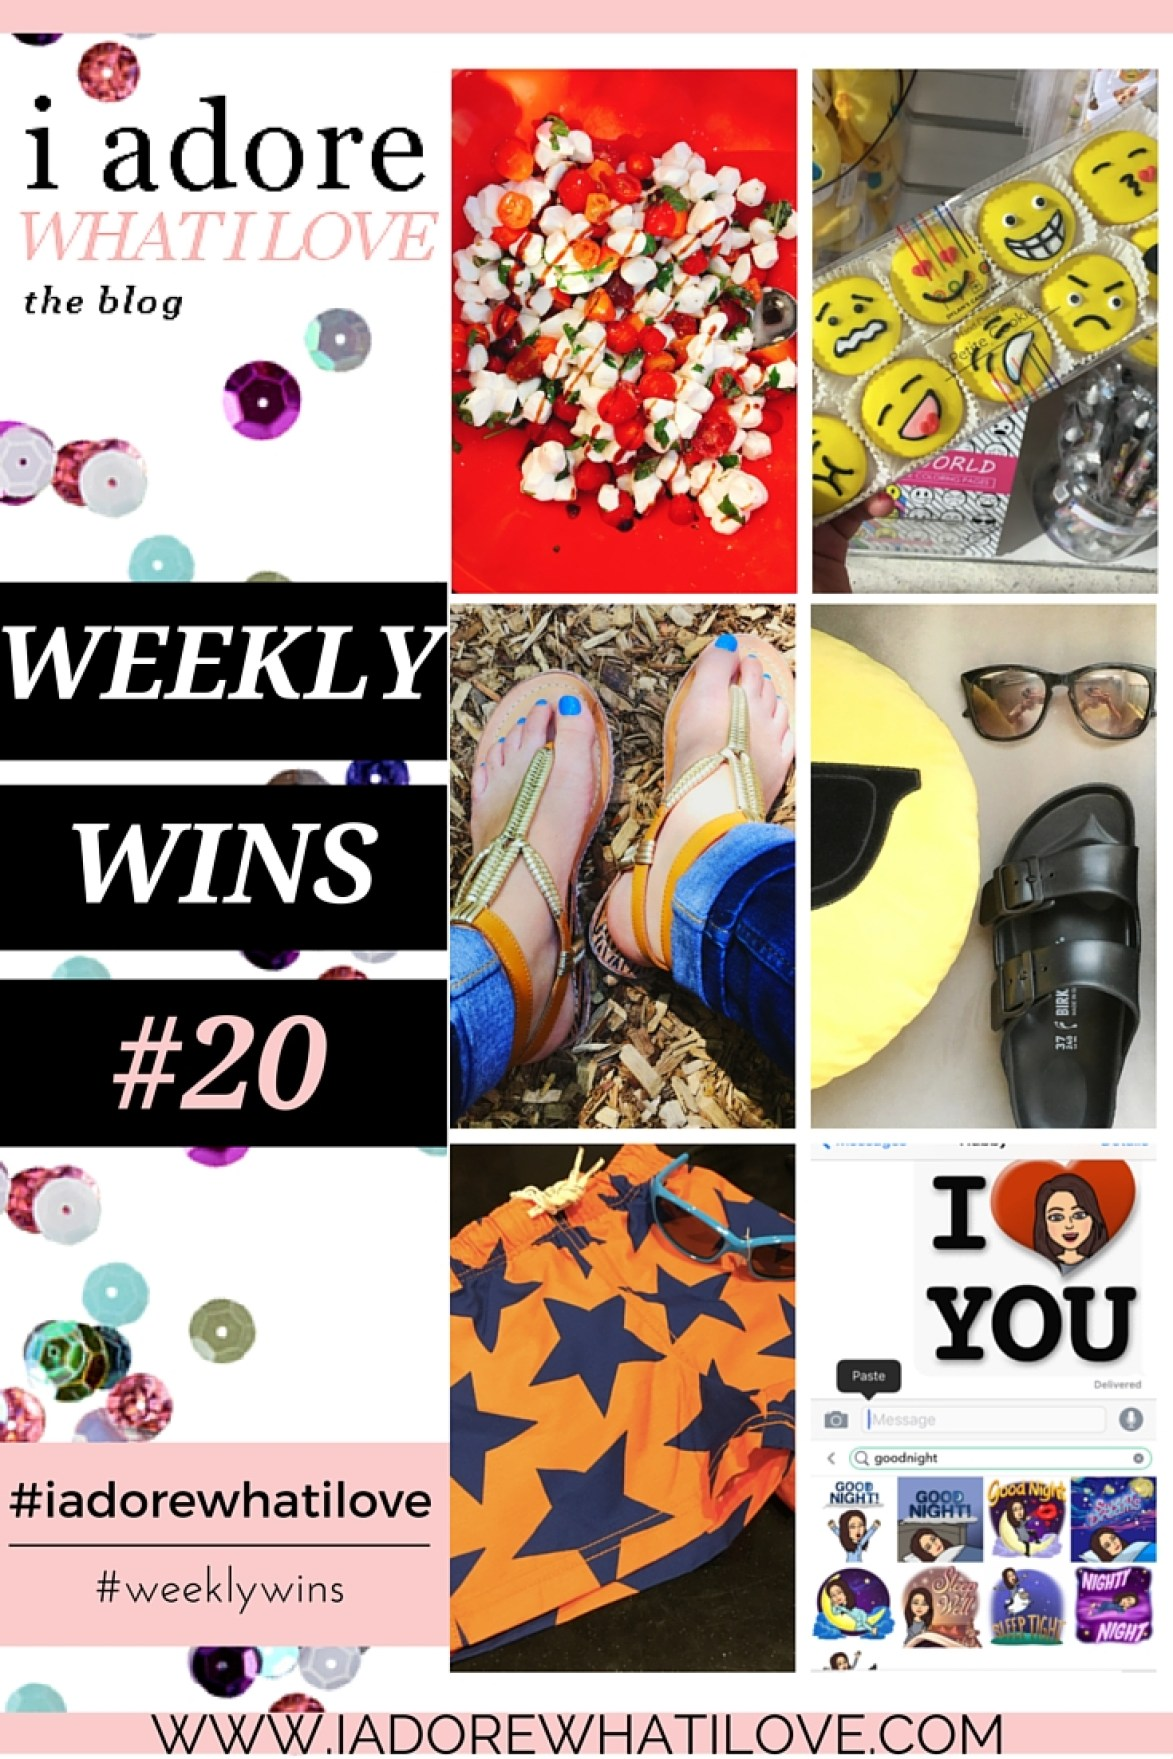 I Adore What I Love Blog // WEEKLY WINS #20 // www.iadorewhatilove.com #iadorewhatilove